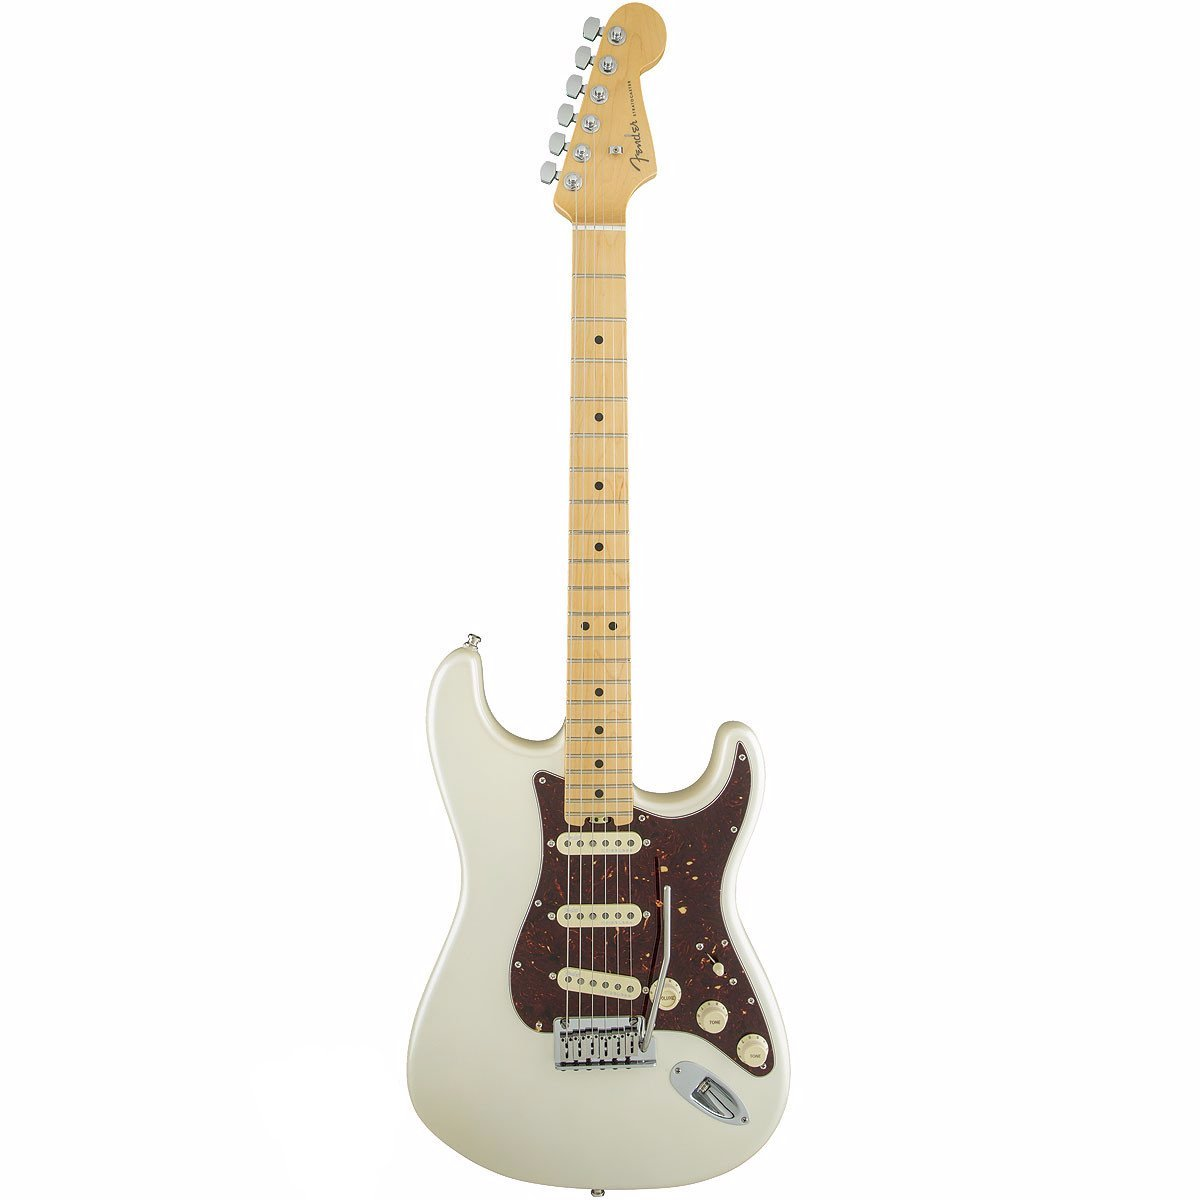 Fender American Elite Stratocaster, Maple, Olympic Pearl - Vintage Guitar Boutique - 2